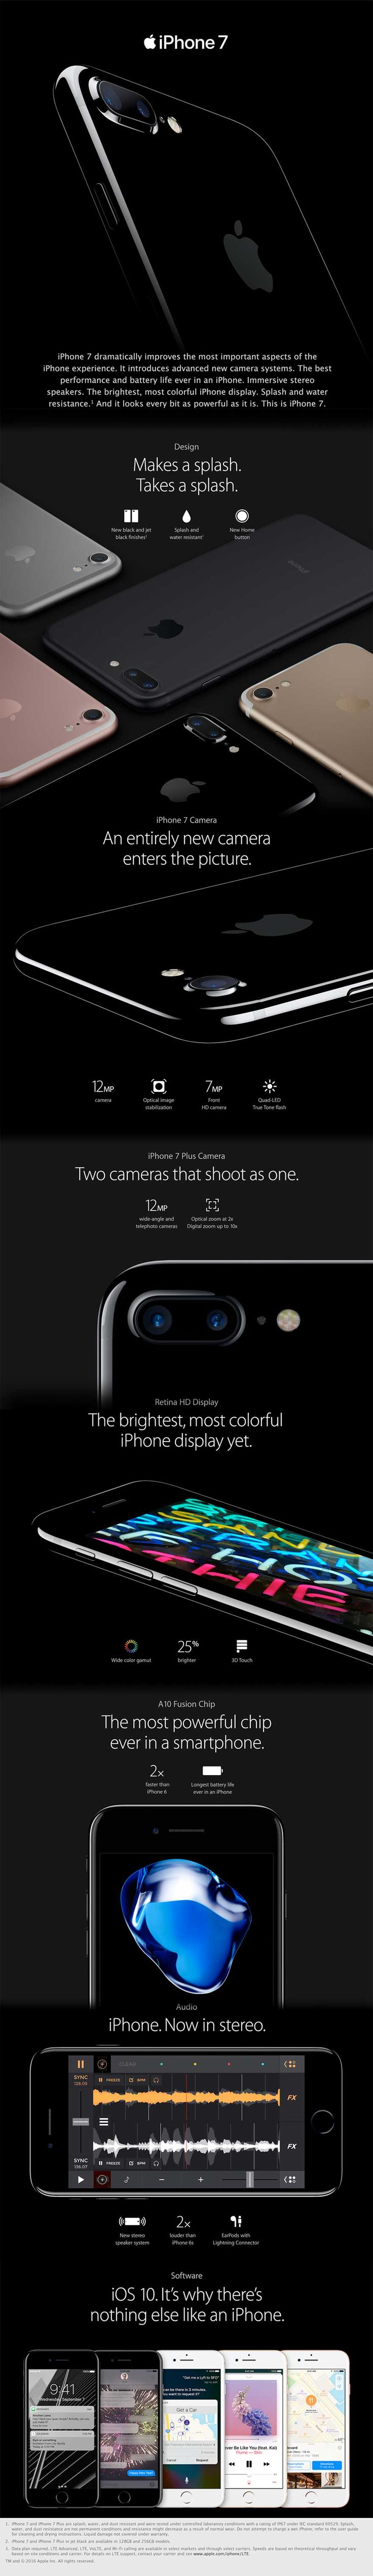 Apple ~ Introducing iPhone 7 -- here are the basics and features, thanks to the UGNN (User Group Network News Service) and if you go to the page they are showing the Apple Video introduction for iPhone 7 ... enjoy ... #iPhone #iPhone7 #ugnn #usergroups #usergroupnetwork